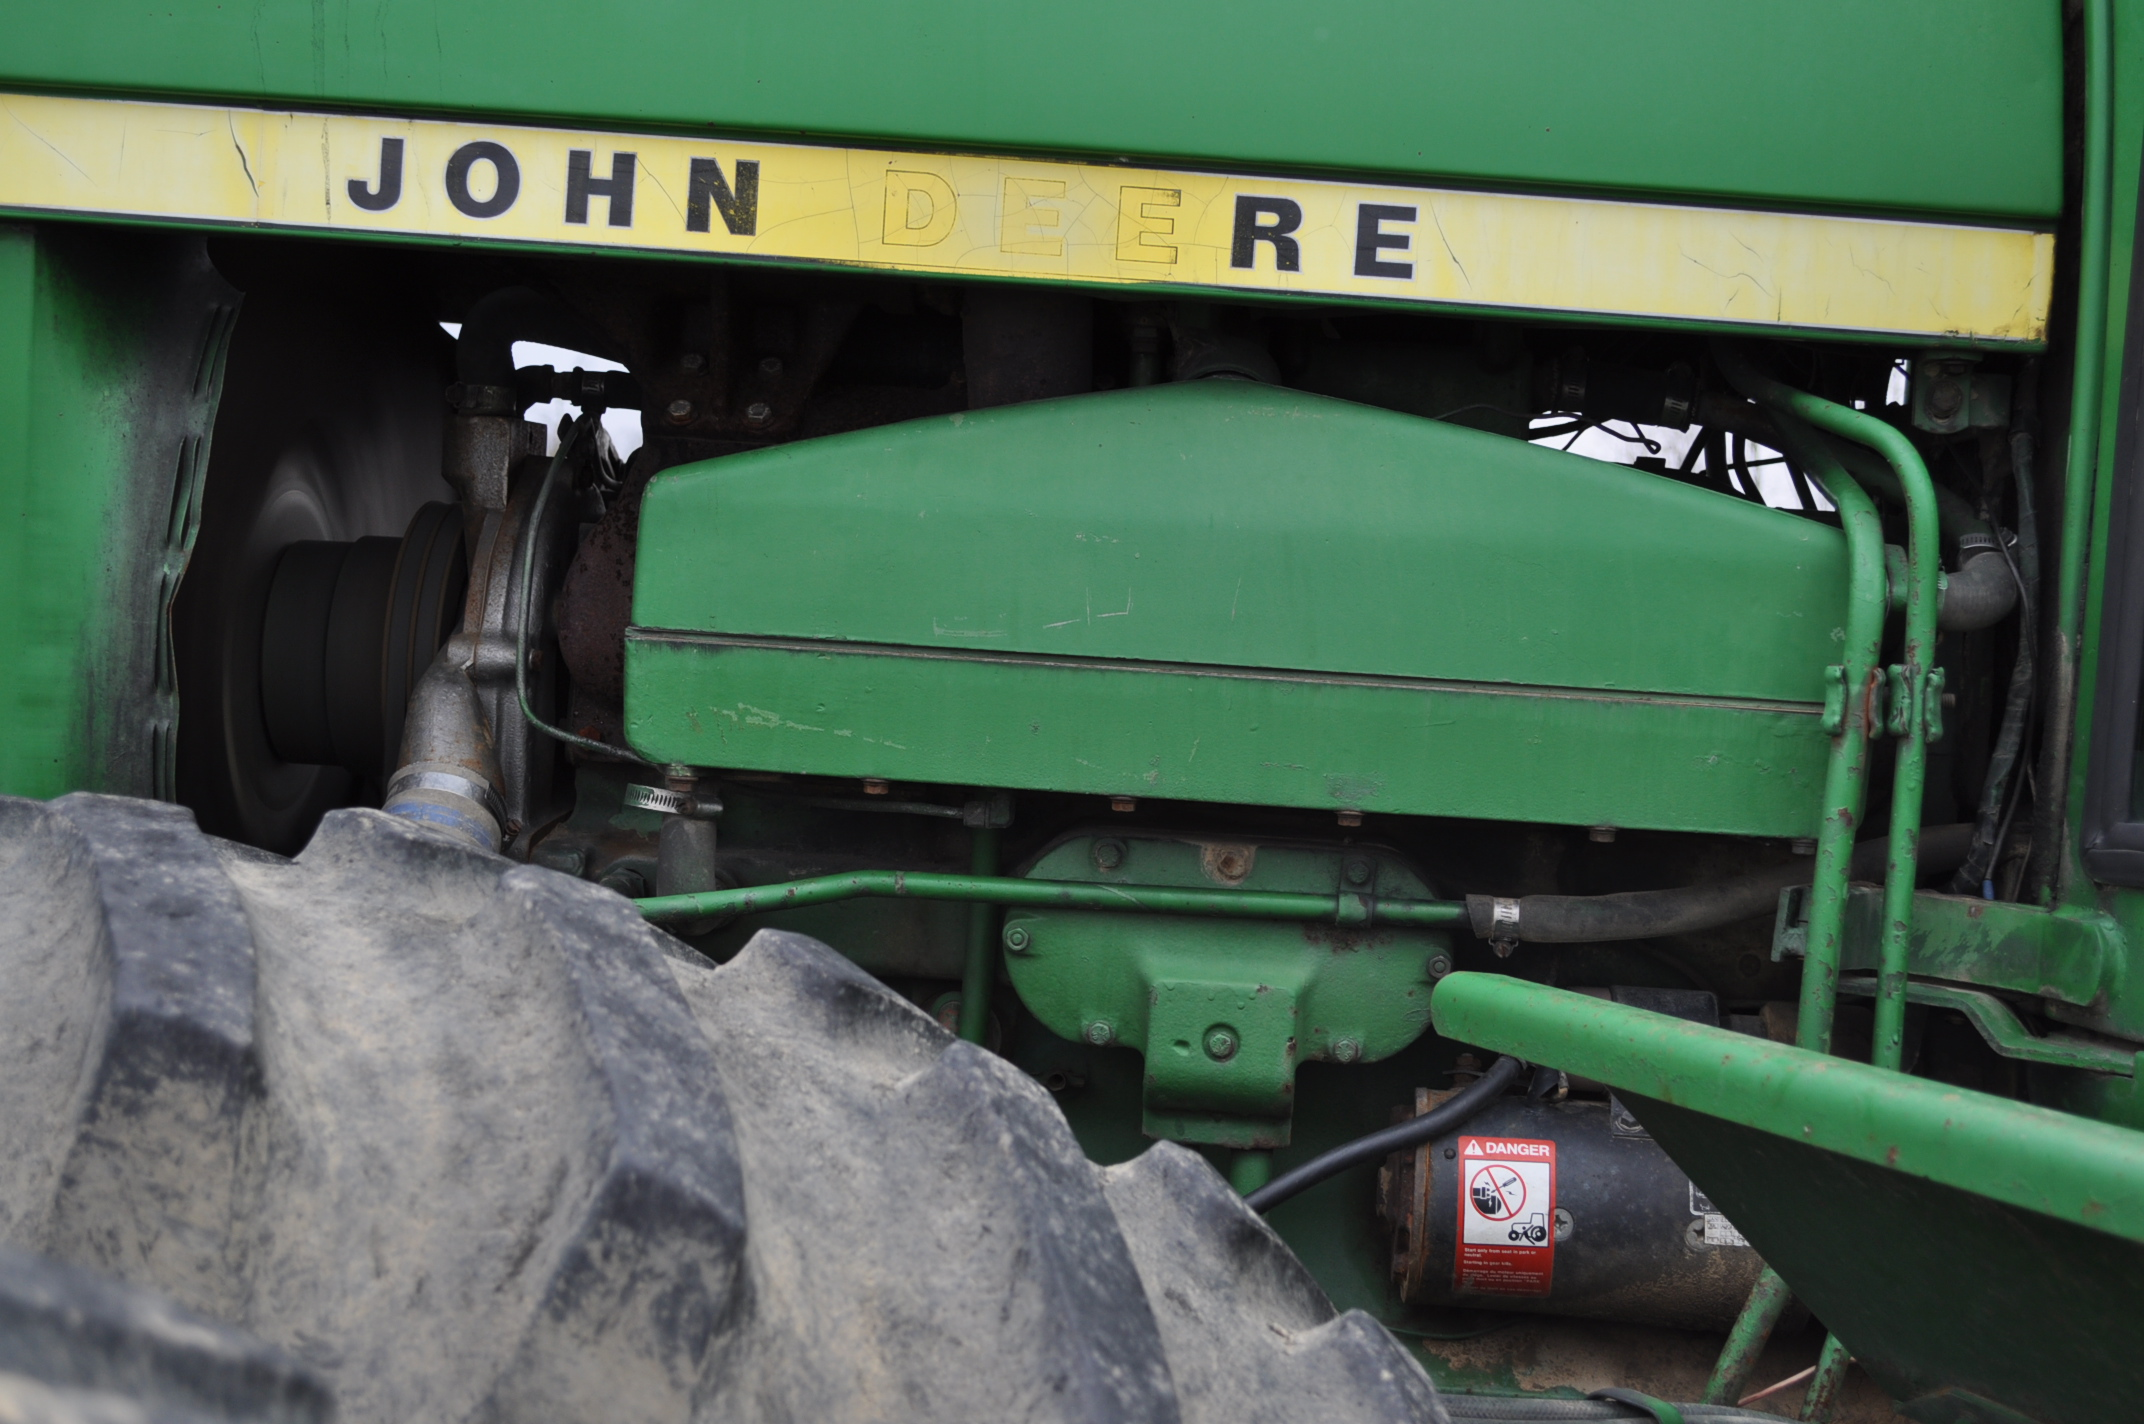 John Deere 8430 tractor, 4WD, diesel, 20.8-34 duals, CHA, Quad range, 3 hyd remotes, 1000 pto, 3 pt, - Image 10 of 19